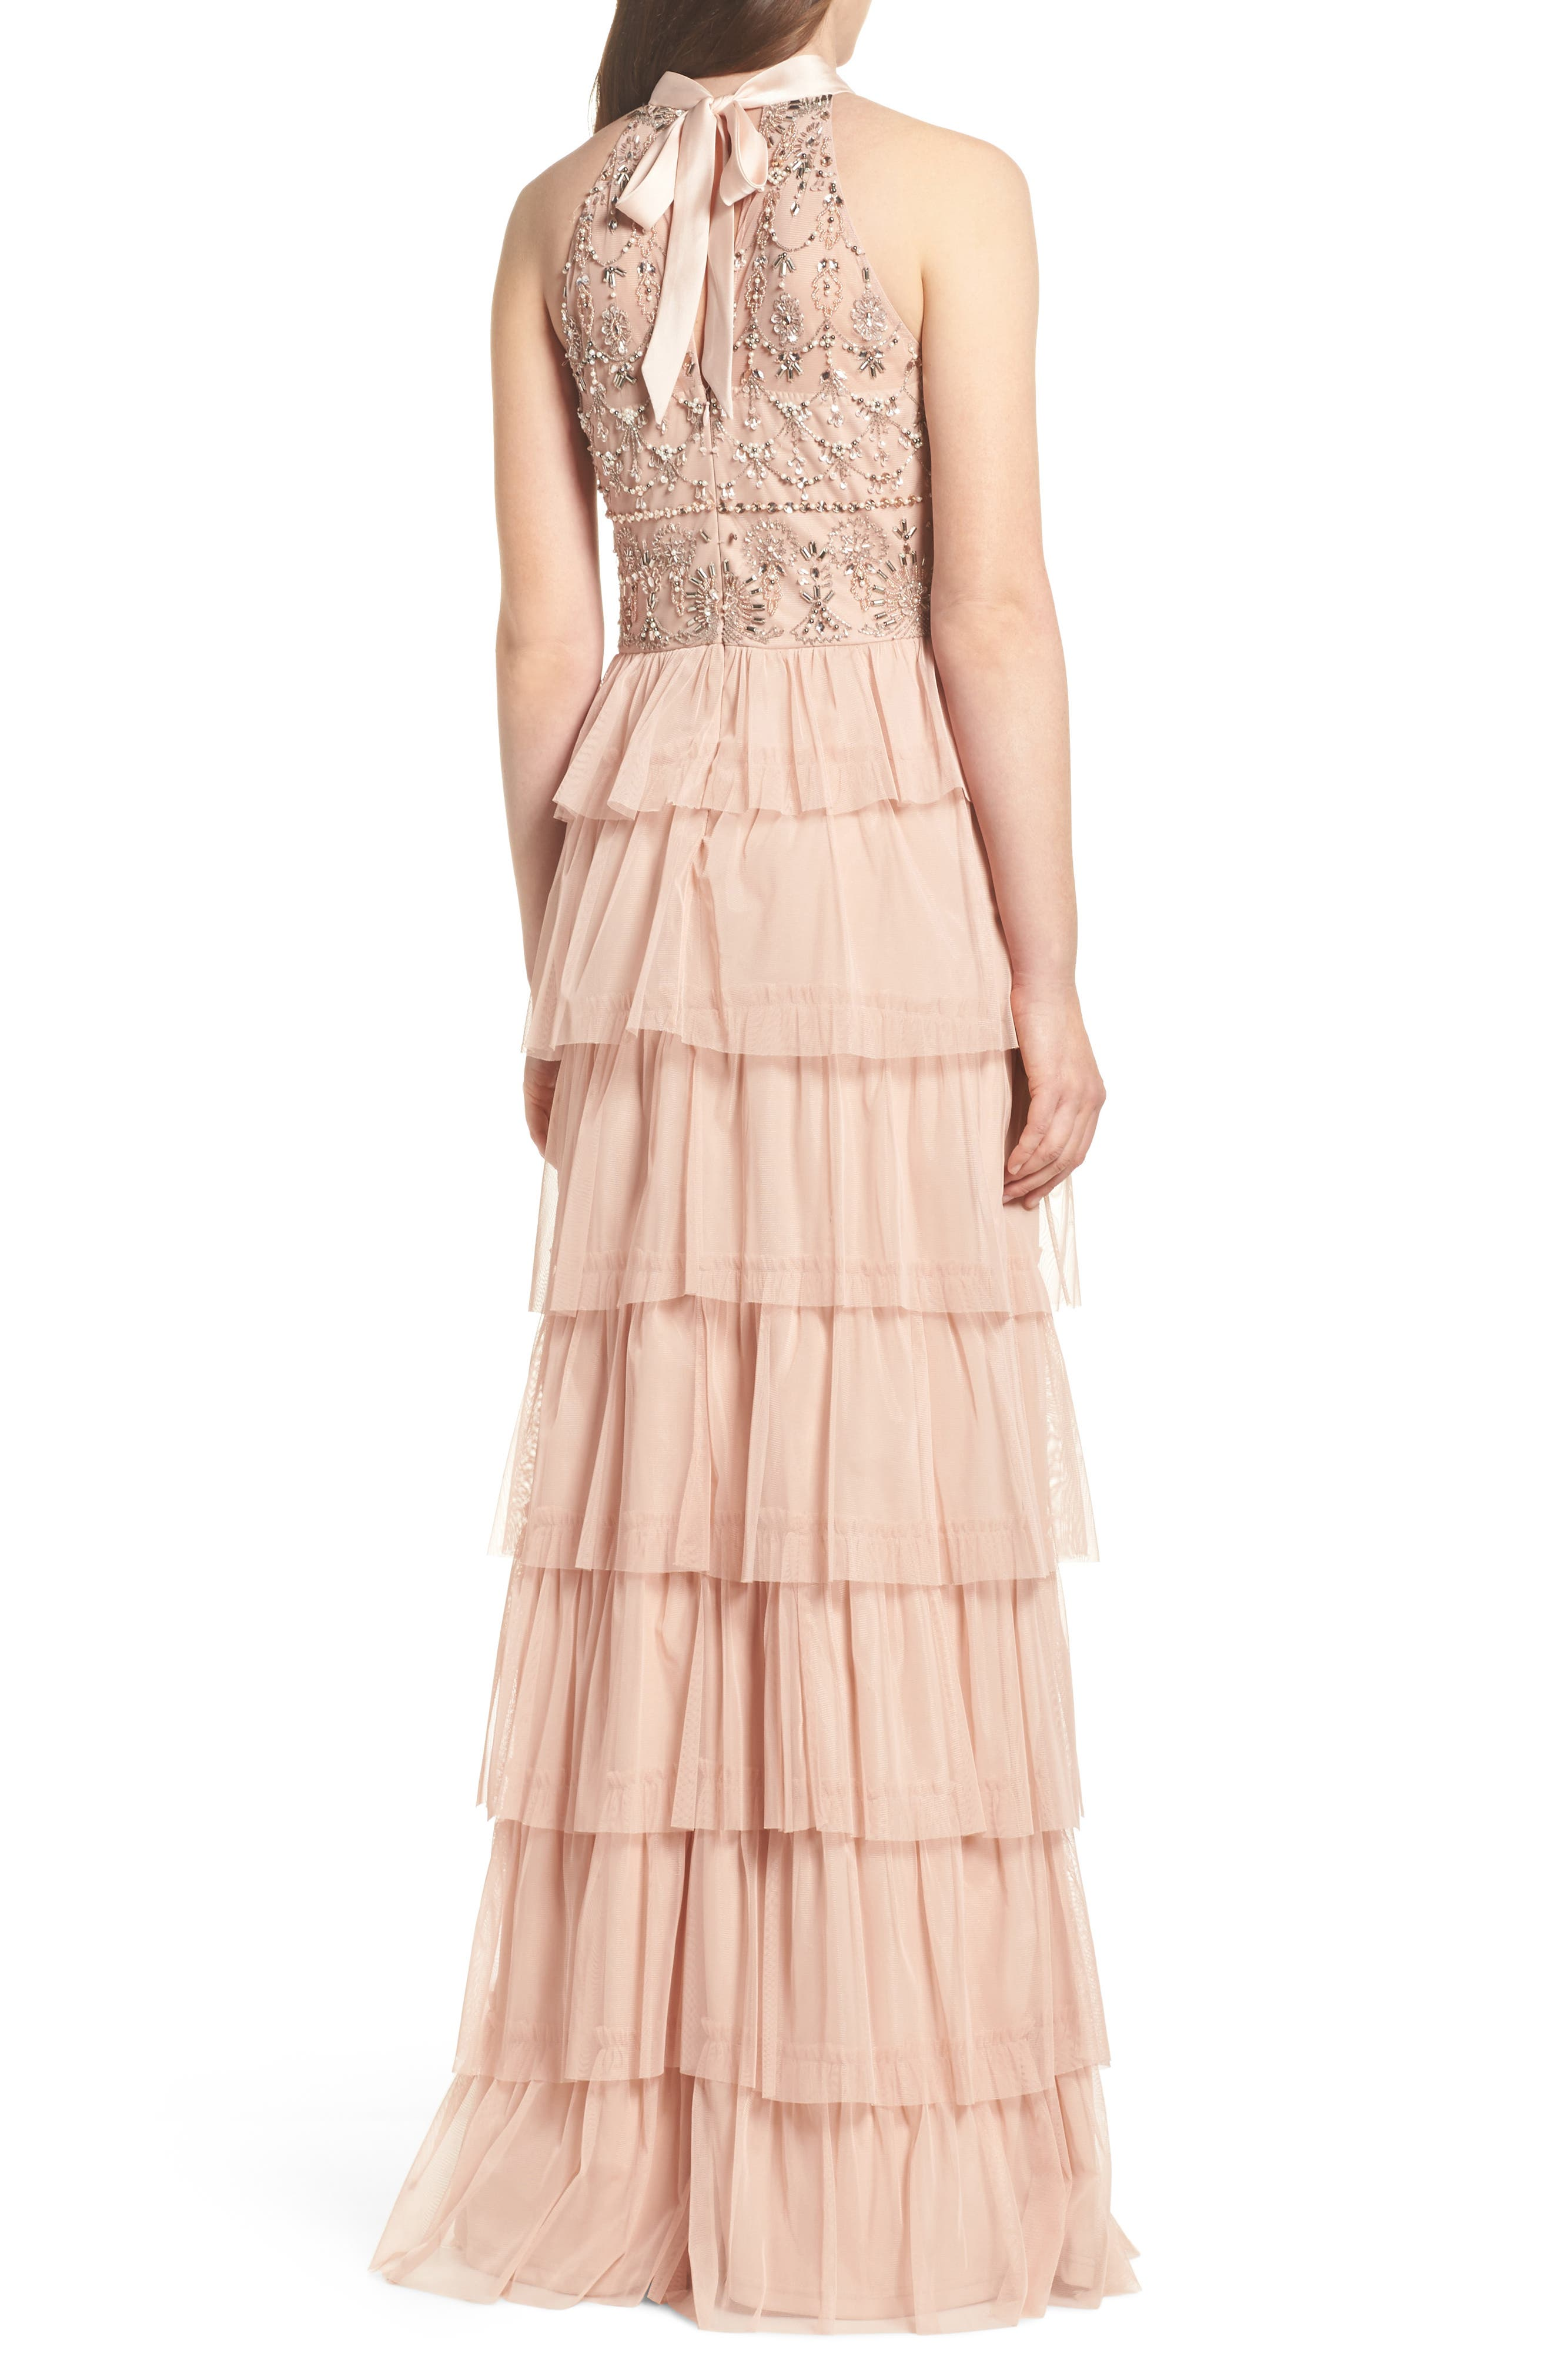 Embellished Tiered Maxi Dress,                             Alternate thumbnail 2, color,                             Blush